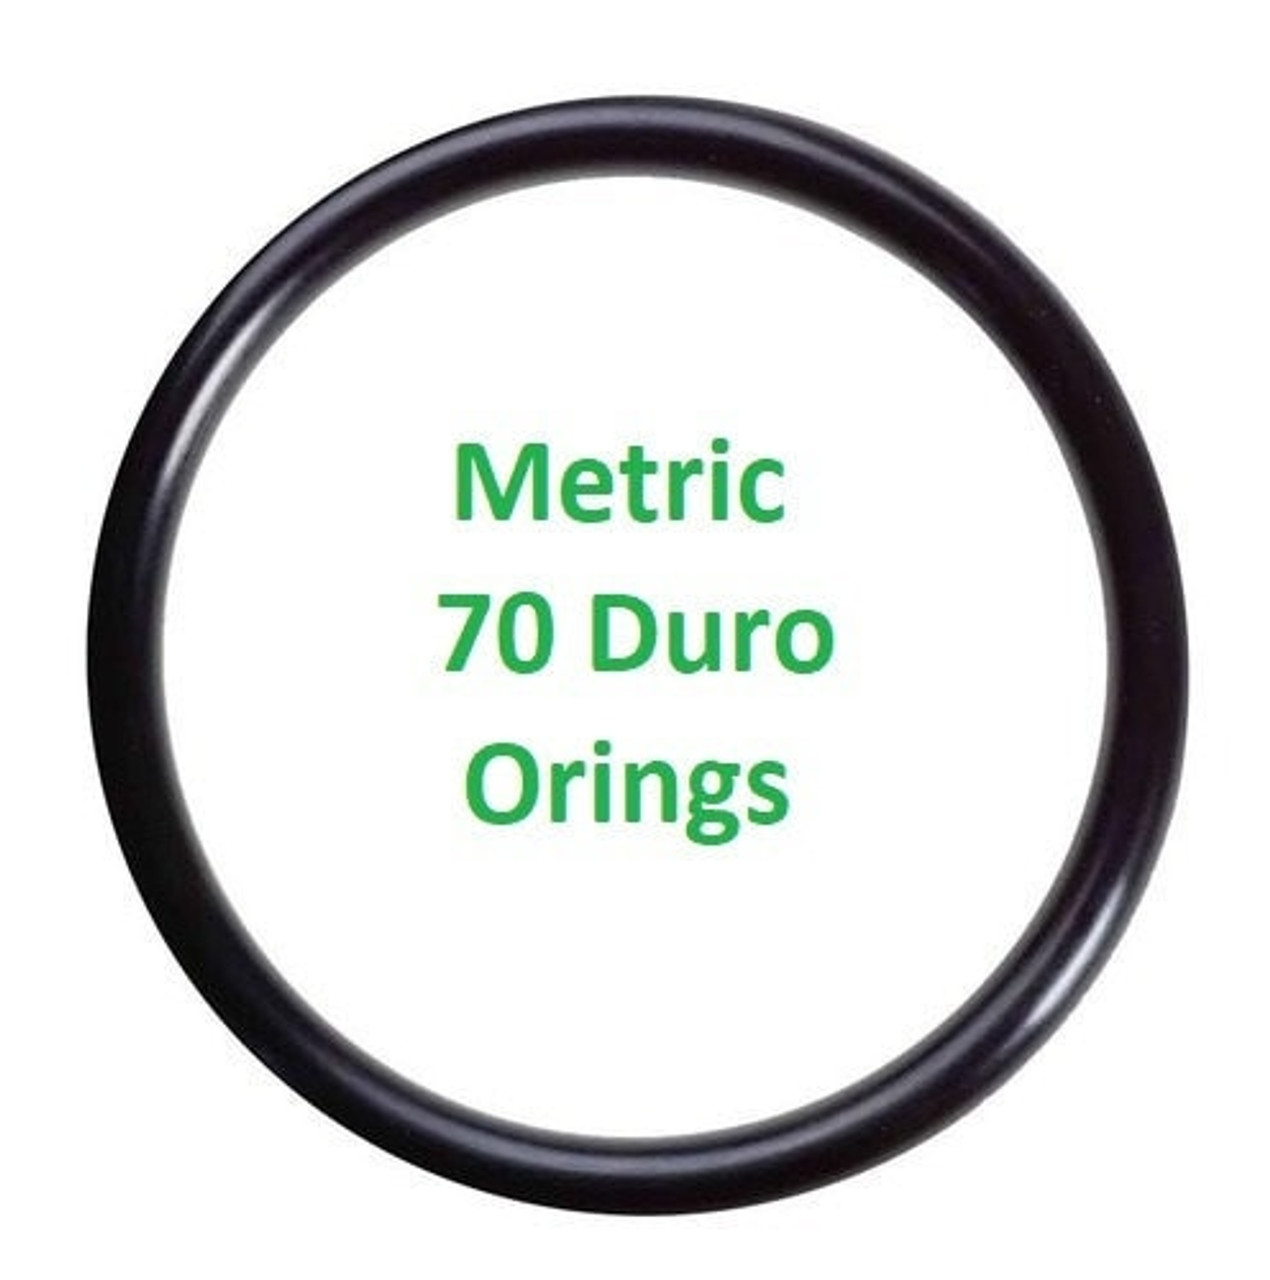 Metric Buna  O-rings 4.5 x 1.5mm JIS S5 Price for 50 pcs